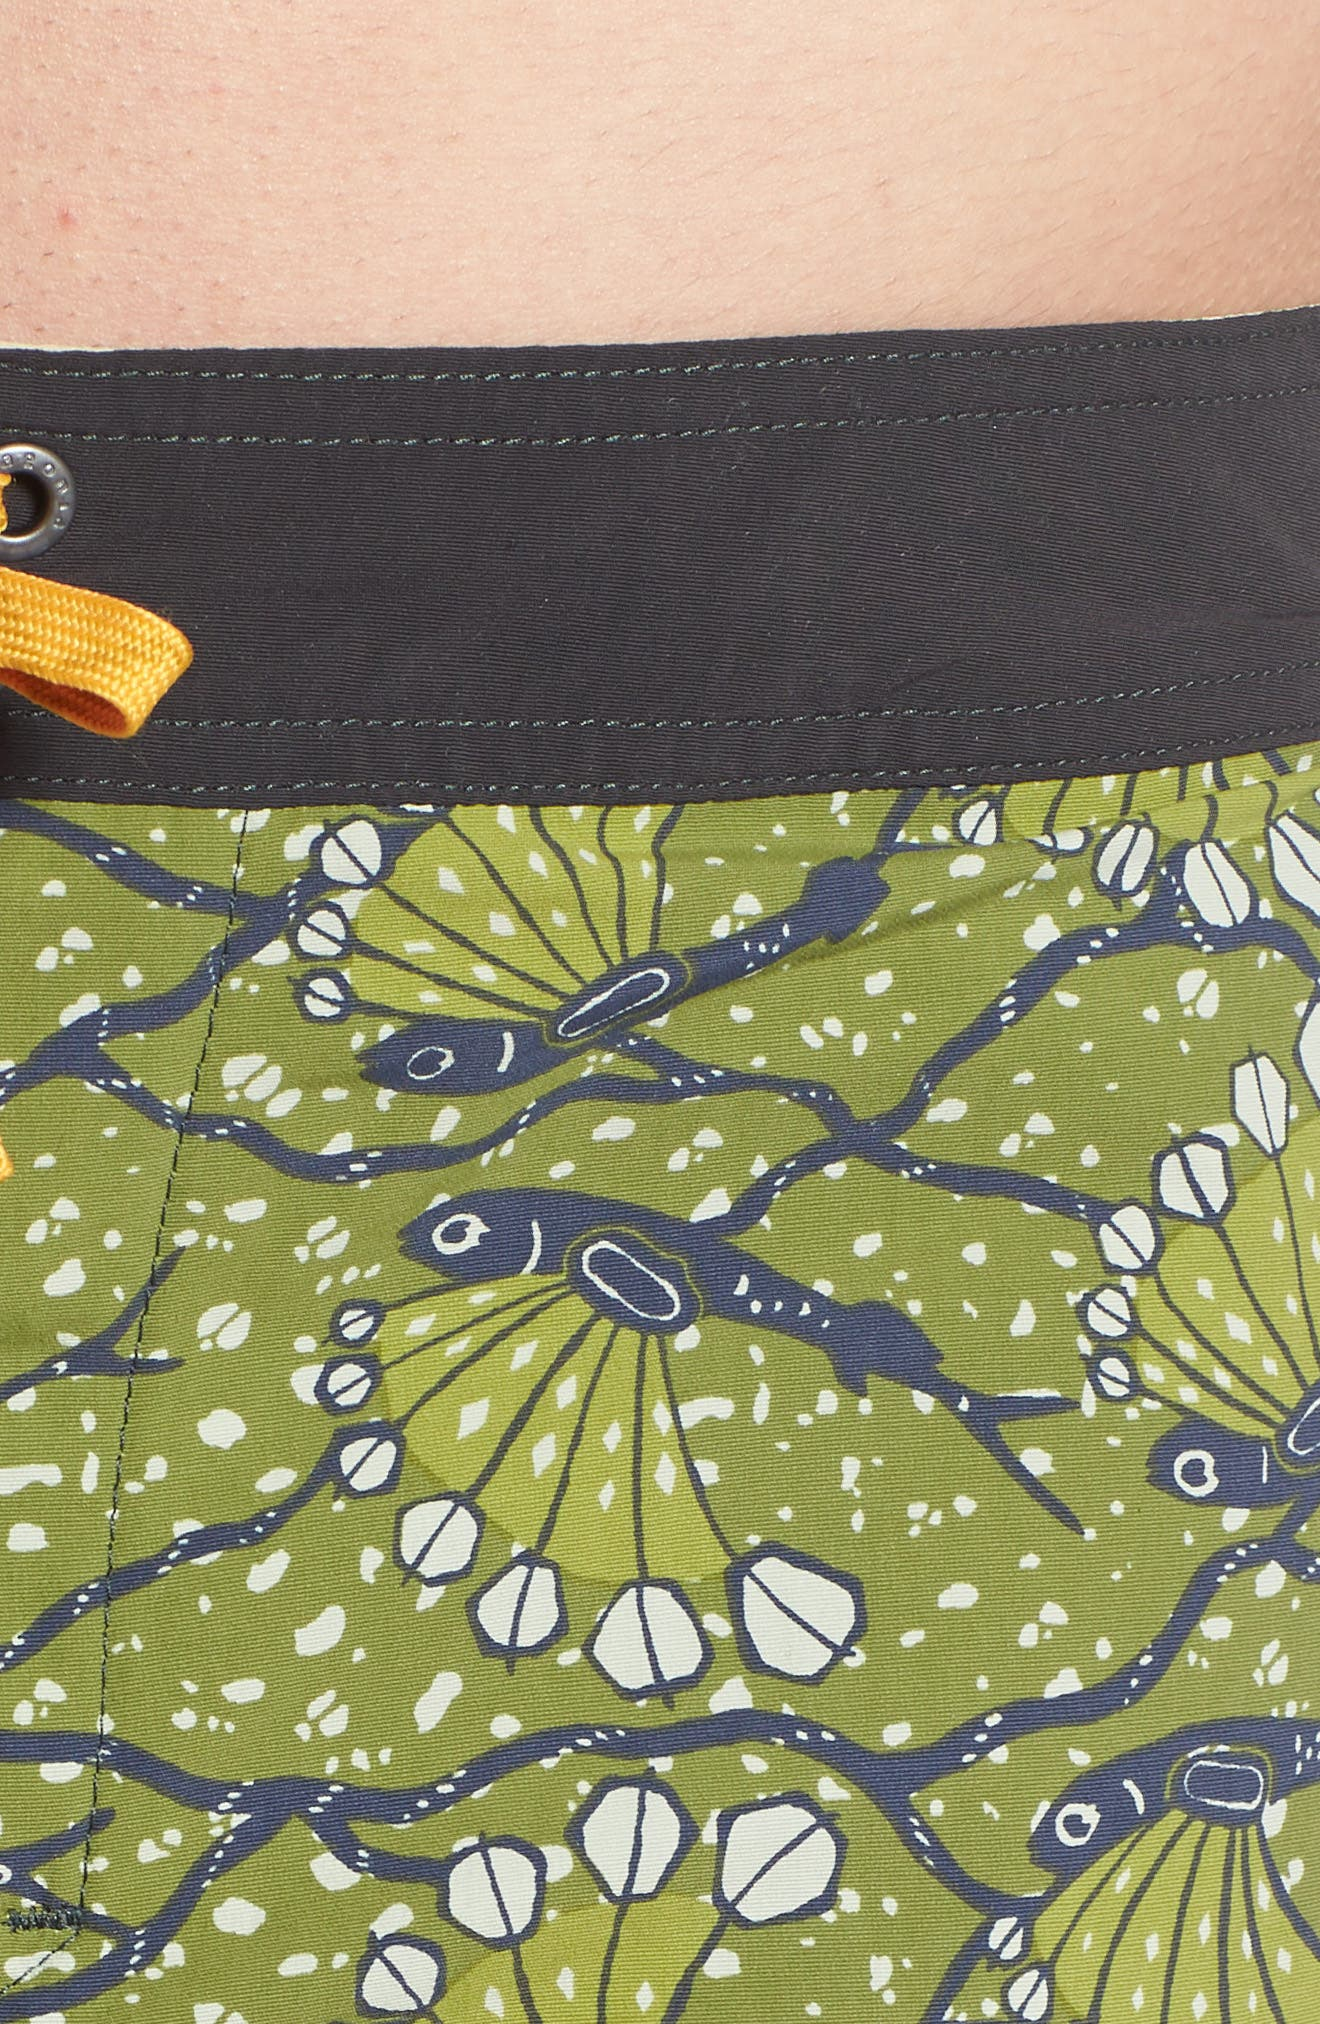 Wavefarer Board Shorts,                             Alternate thumbnail 4, color,                             Hexy Fish Sprouted Green